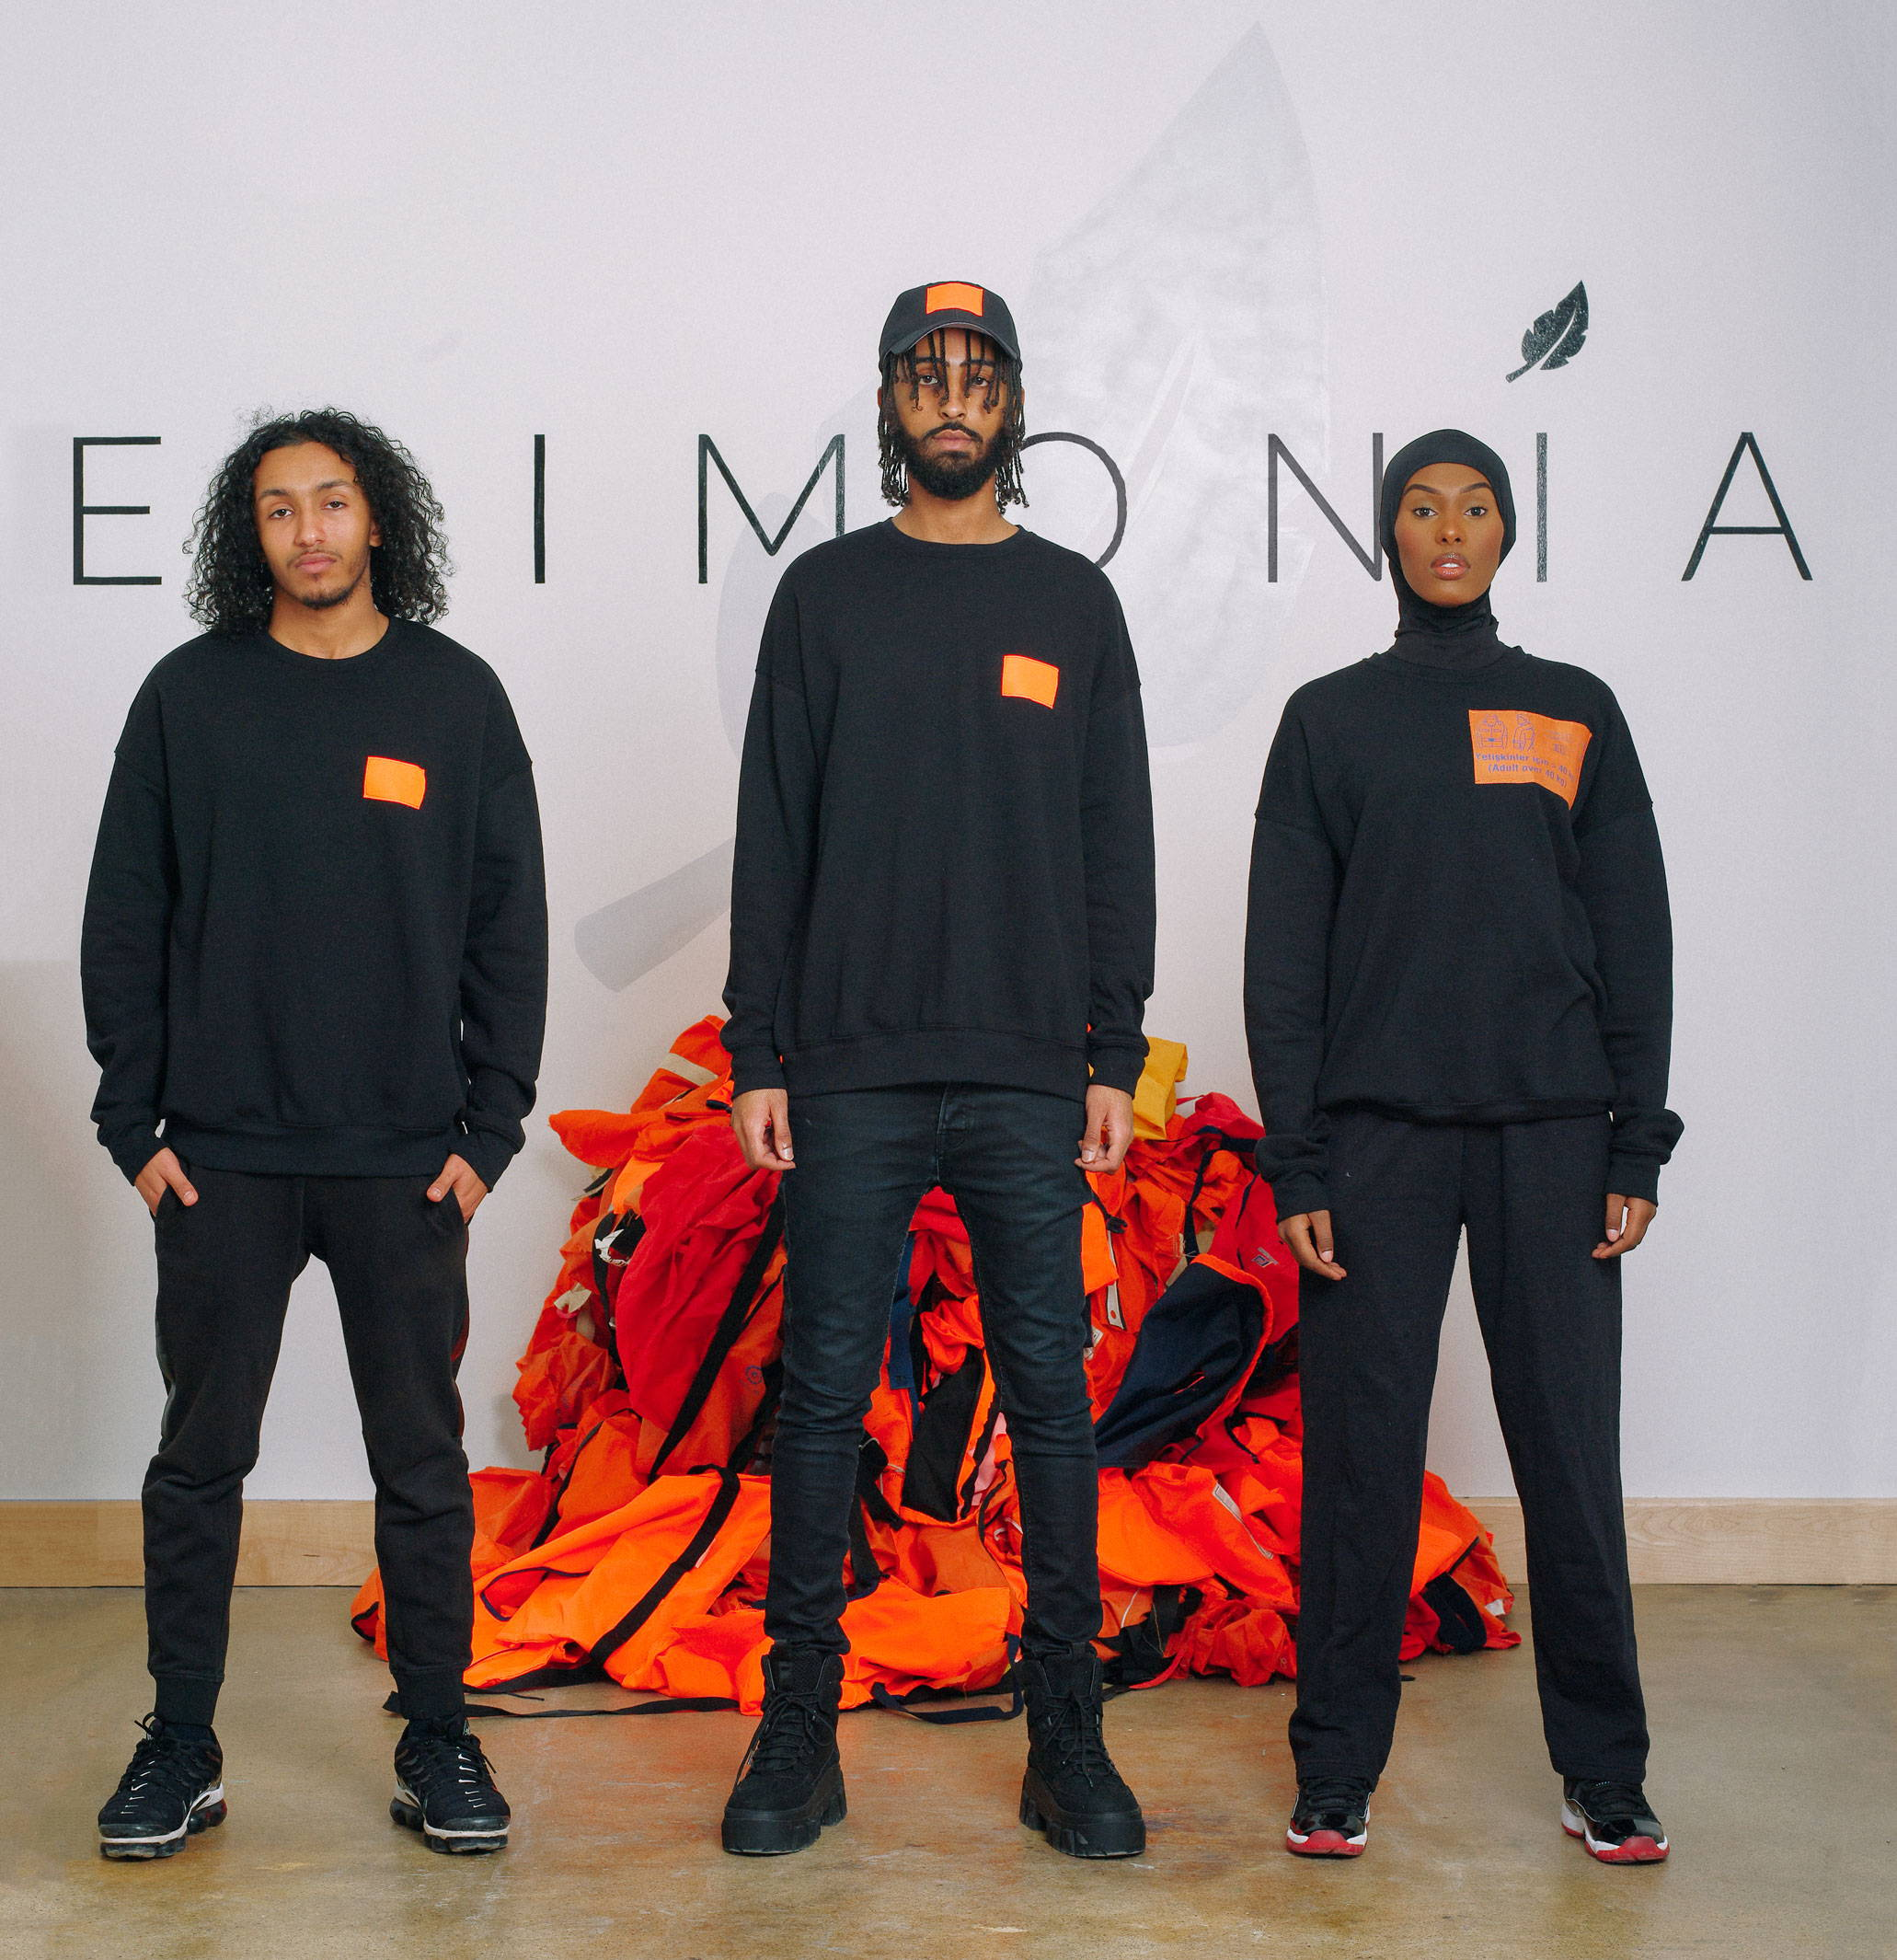 Refugee Models Wearing Epimonia Life Jacket Sweatshirts and Hats